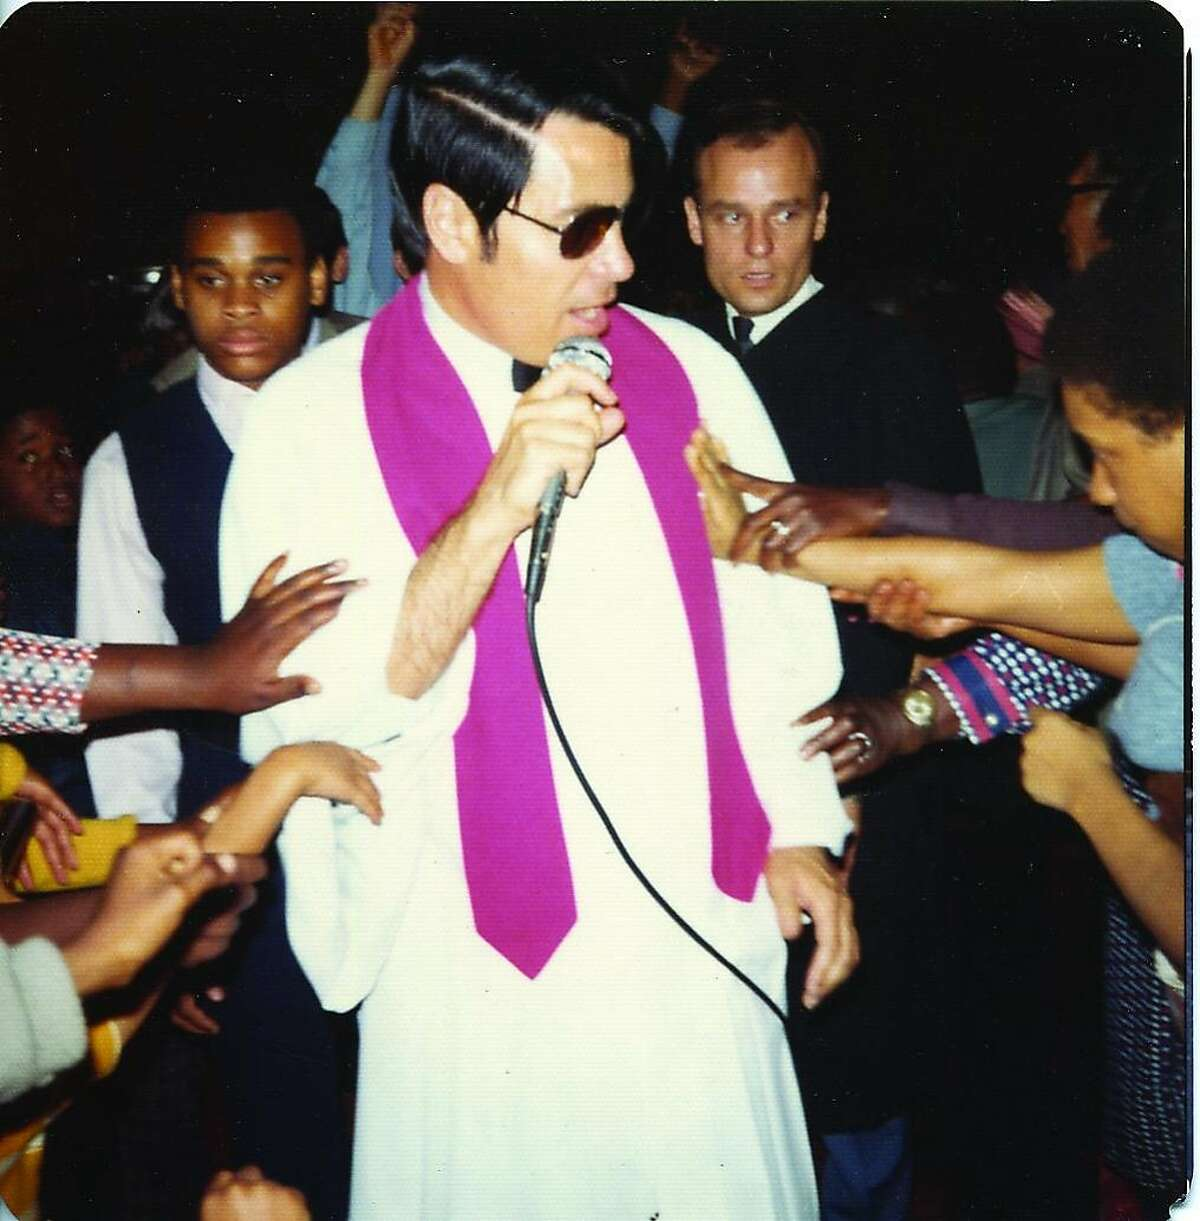 Jim Jones in white robe and sunglasses being touched by members of the Peoples Temple in Los Angeles in 1974.